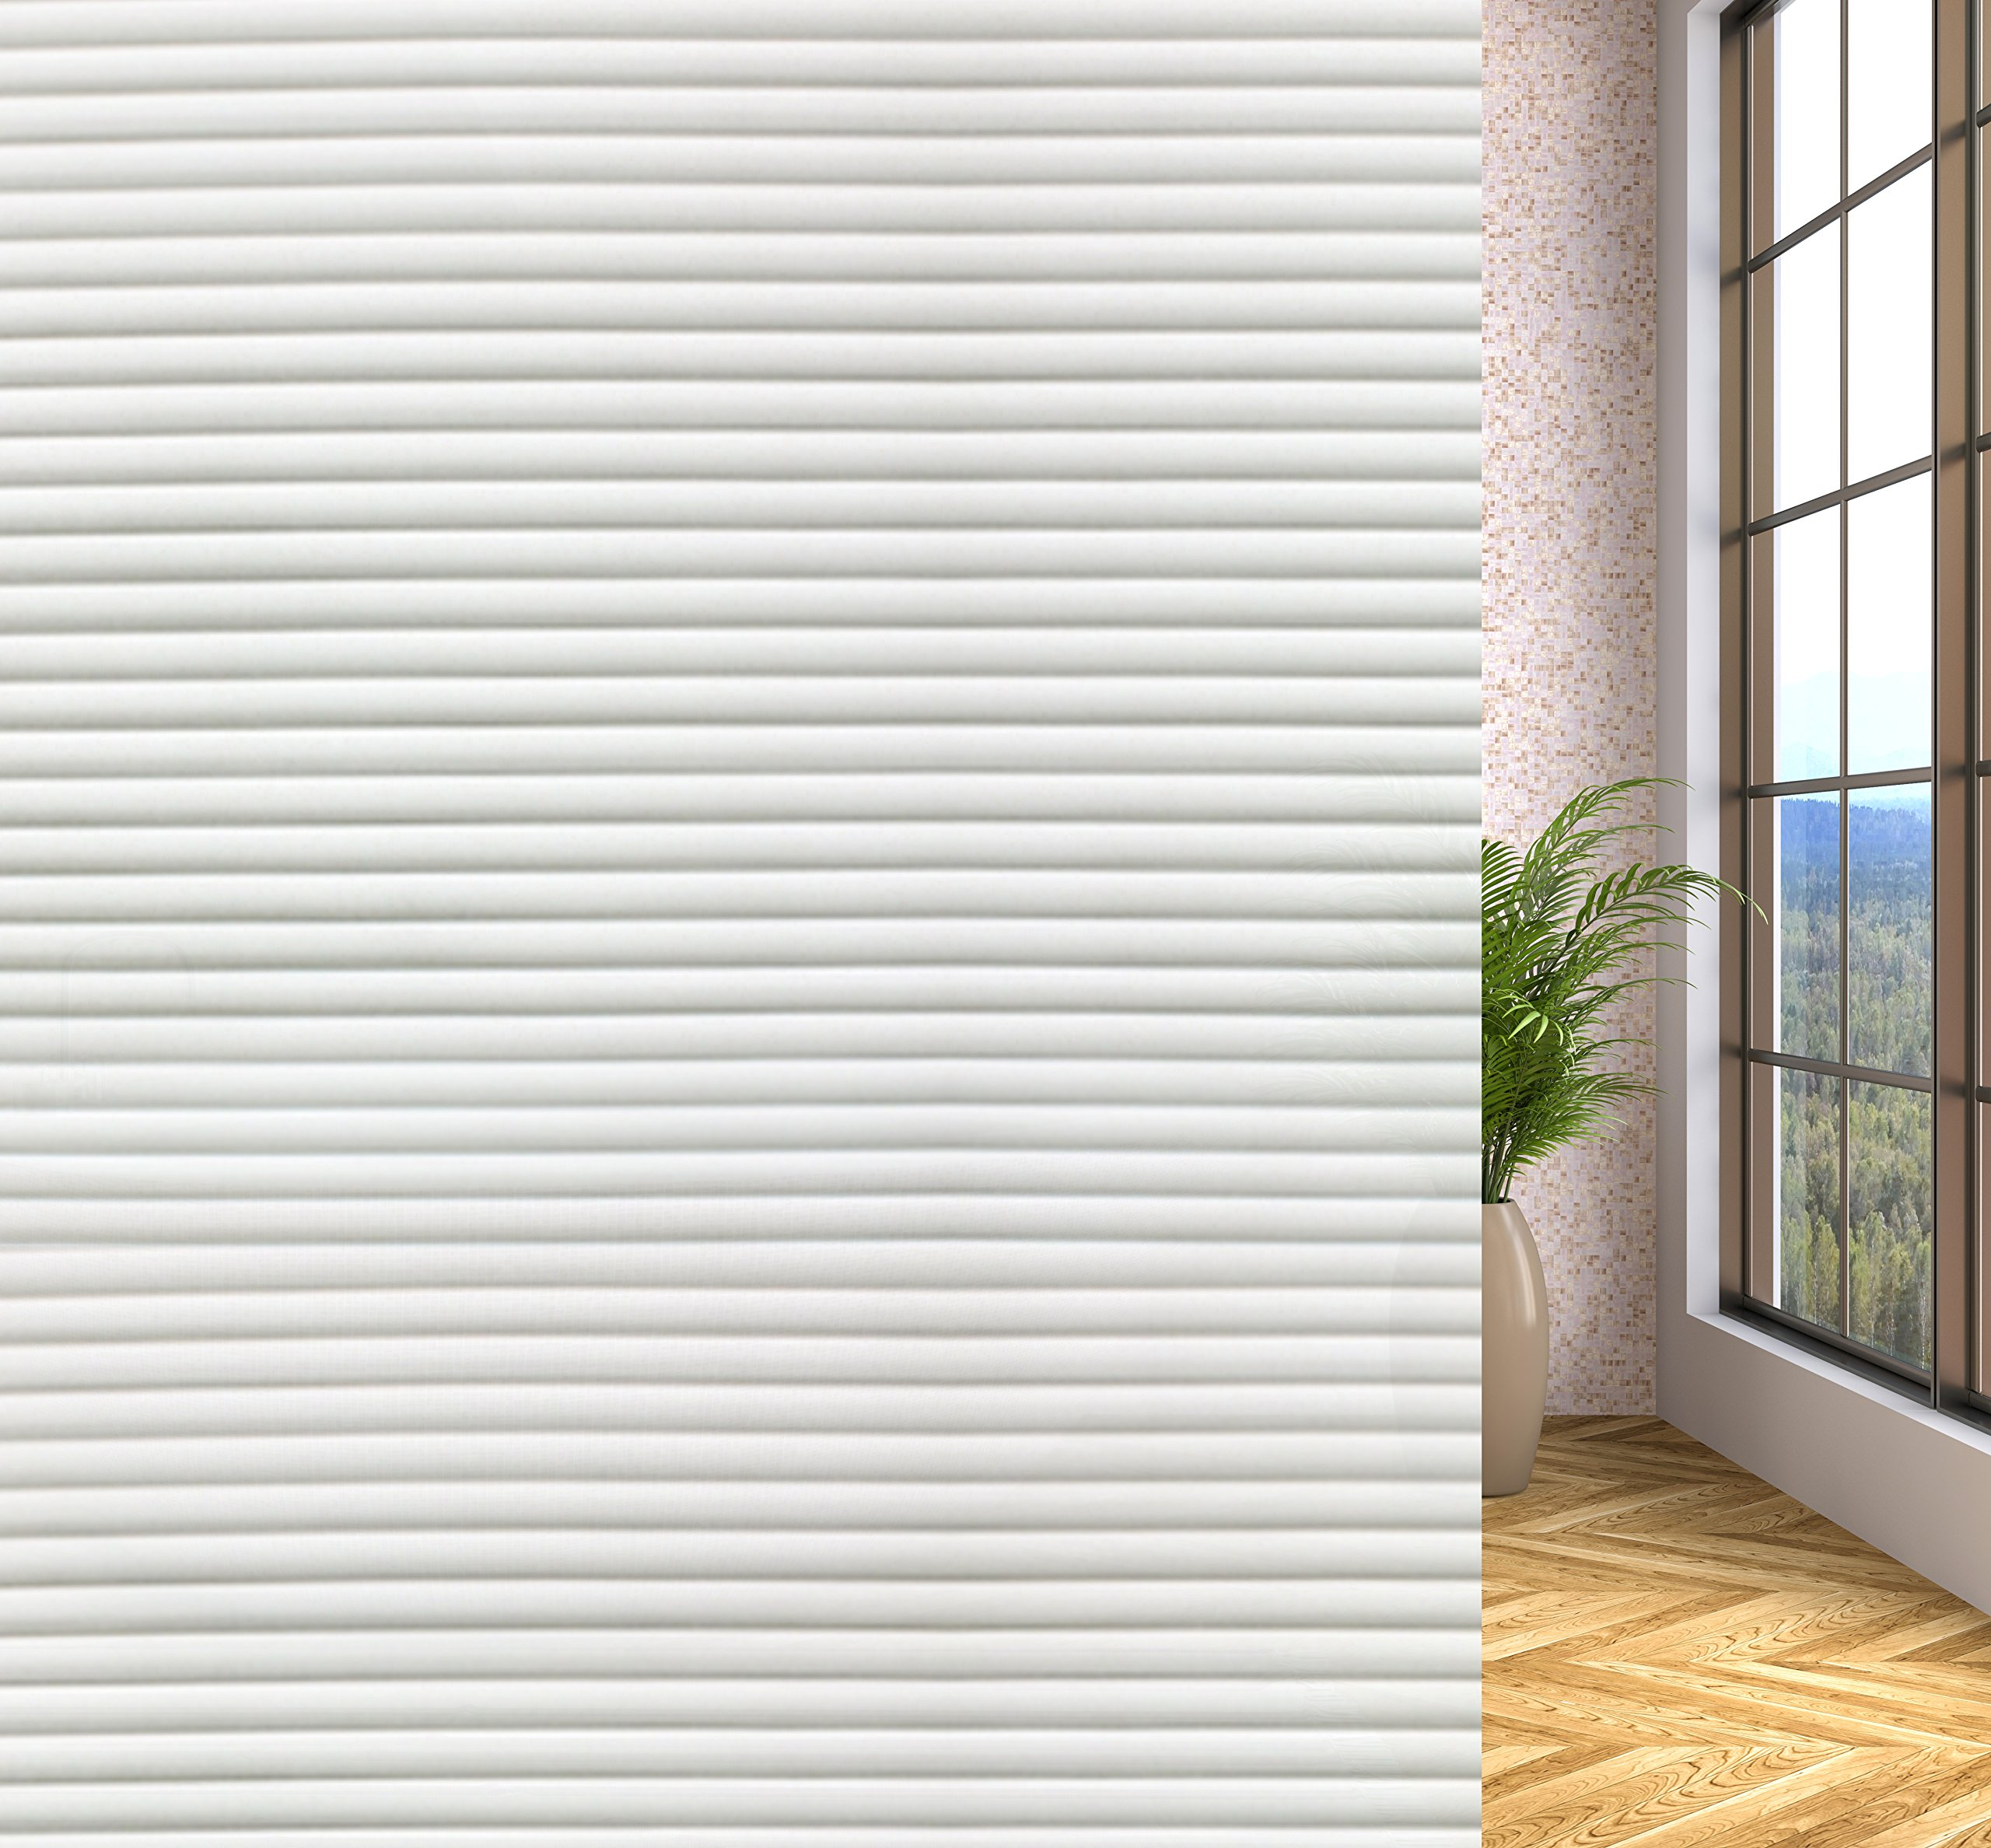 Privacy Window Film Non Adhesive Static Cling Window Film Decorative for Bathroom Kitchen Office Glass Door Wall 35.4-By-78.7-inch (Strip)